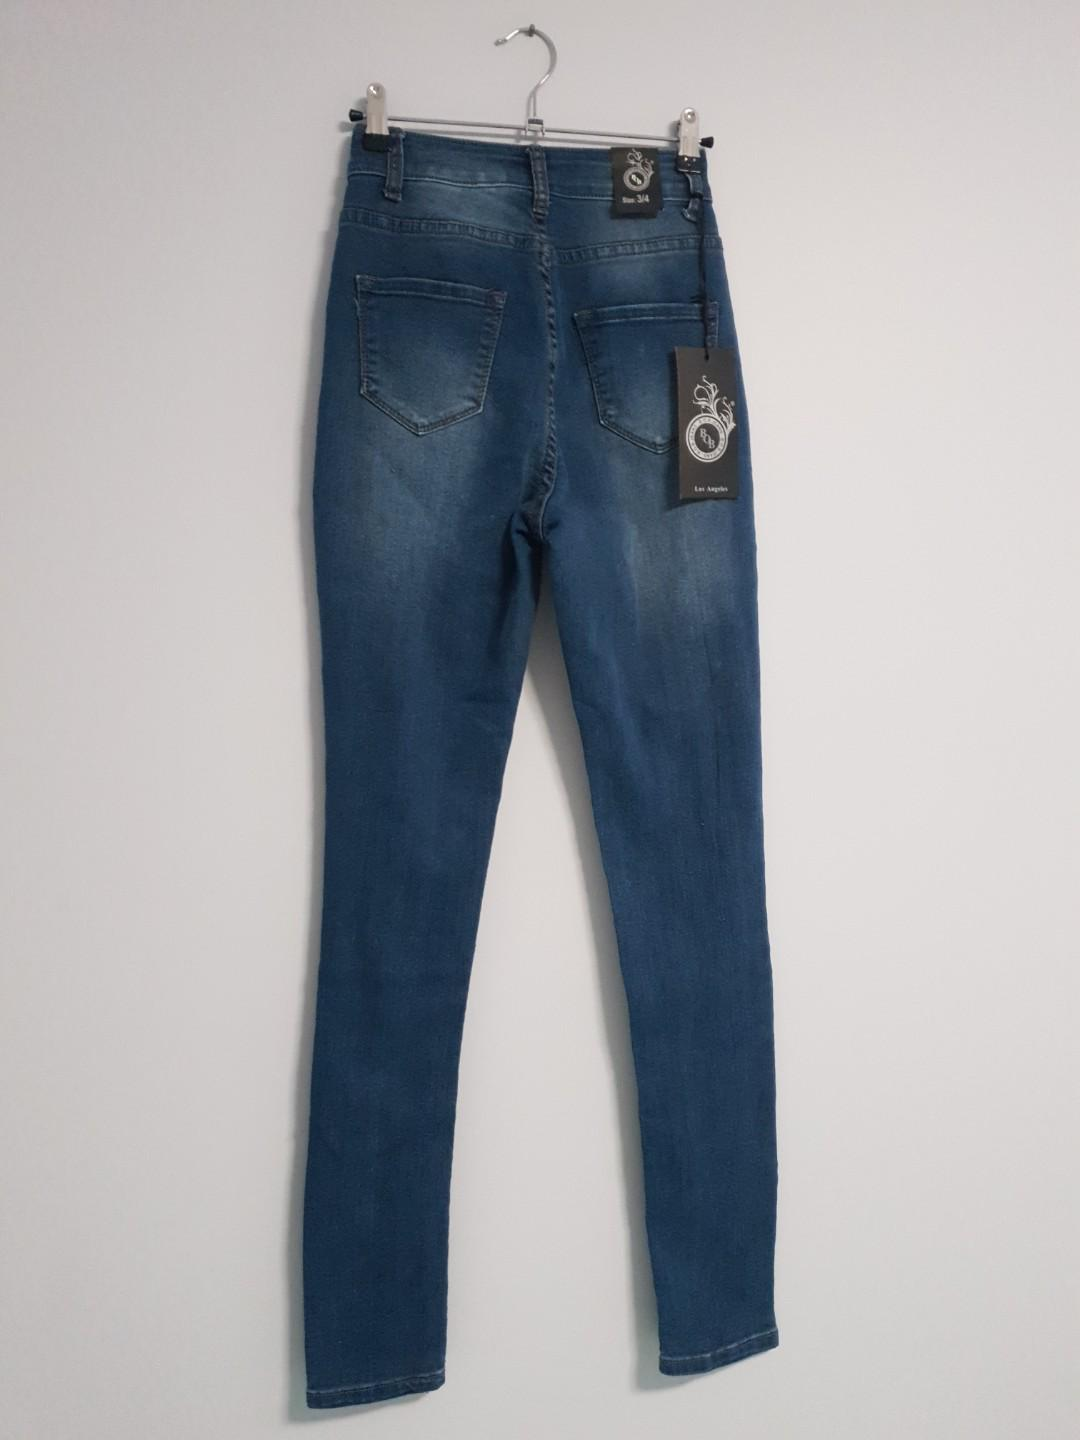 Ripped high rise Jean's